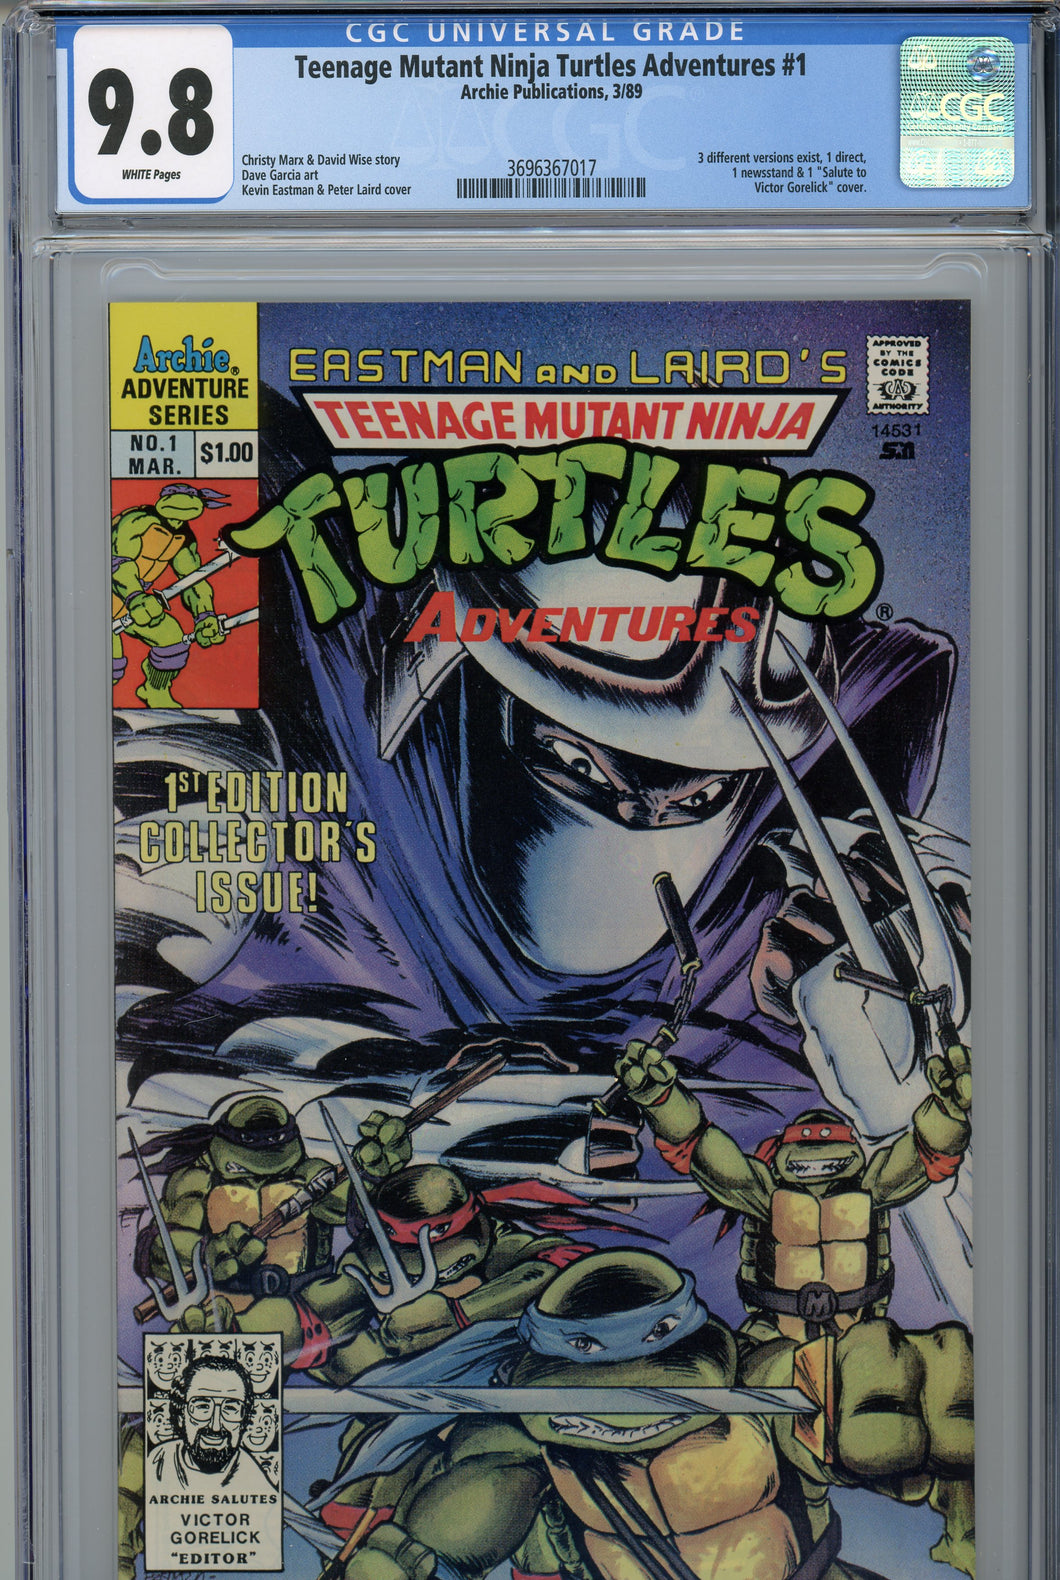 Teenage Mutants Ninja Turtles Adventures #1 CGC 9.8 Gorelick Cover